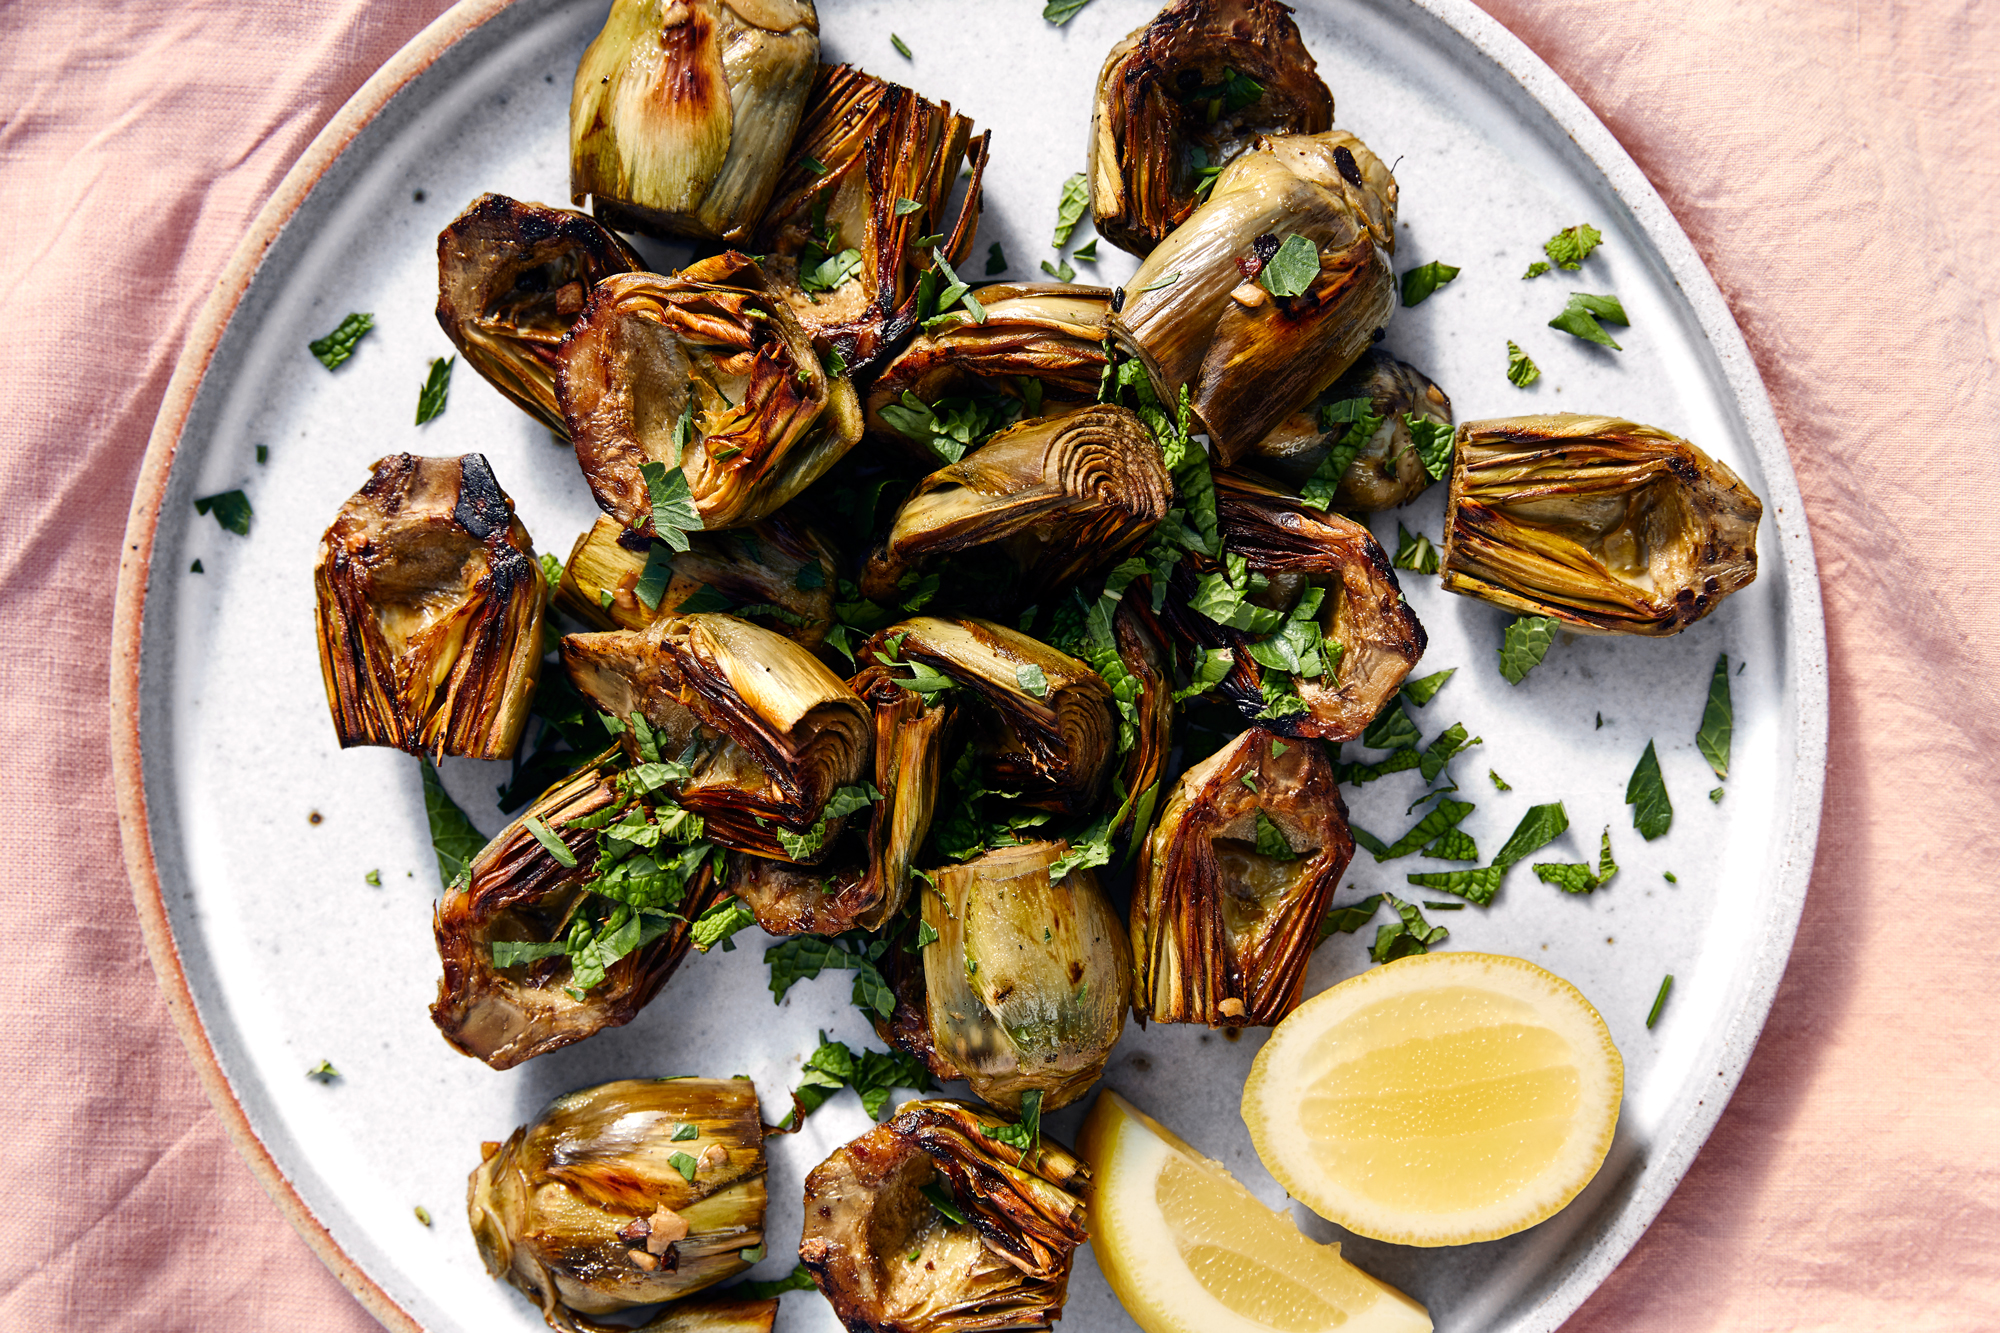 Roasted Baby Artichokes with Parsley and Mint Recipe